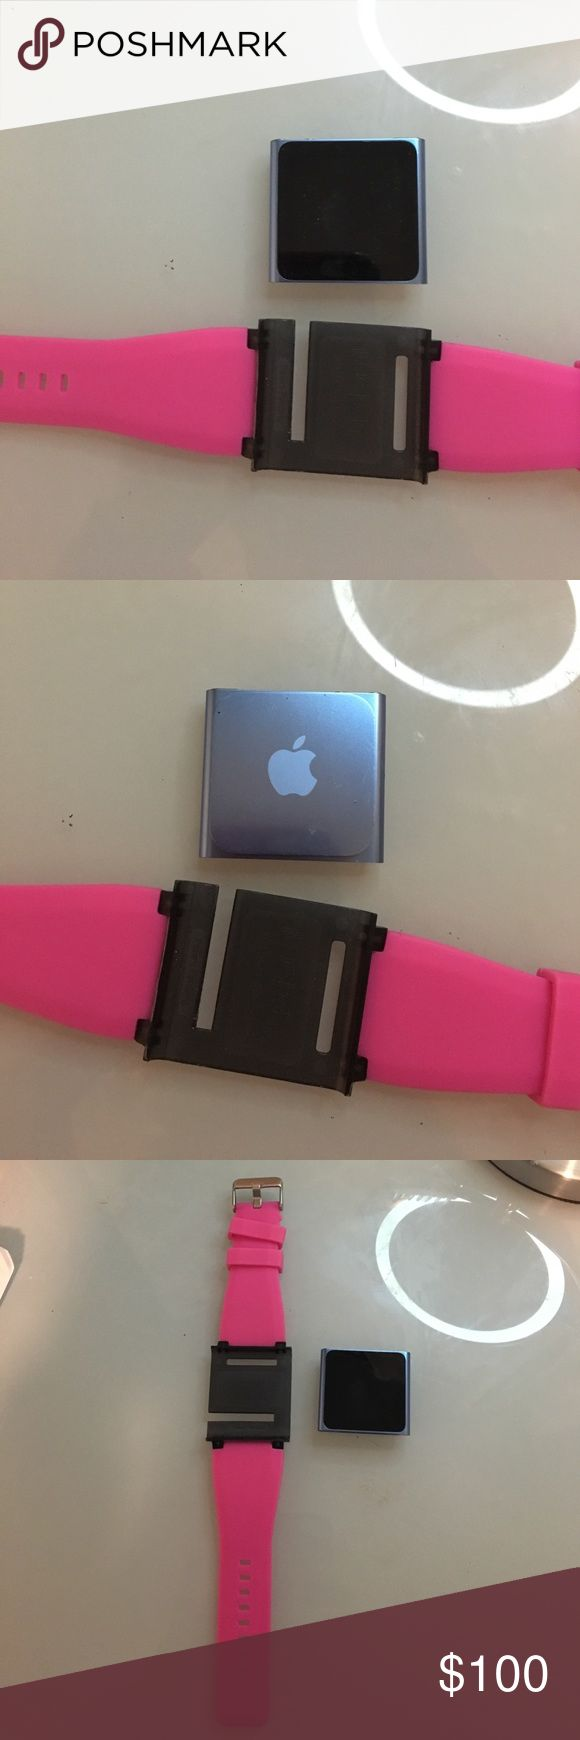 iPod nano / watch NOT APPLE WATCH Oops nano in blue. I don't know the generation of the iPod nano. Pink wrist band to turn the iPod into a watch style.  Does take the old charger. ( iPhone 4 charger ). This was used like 10 times. apple Other